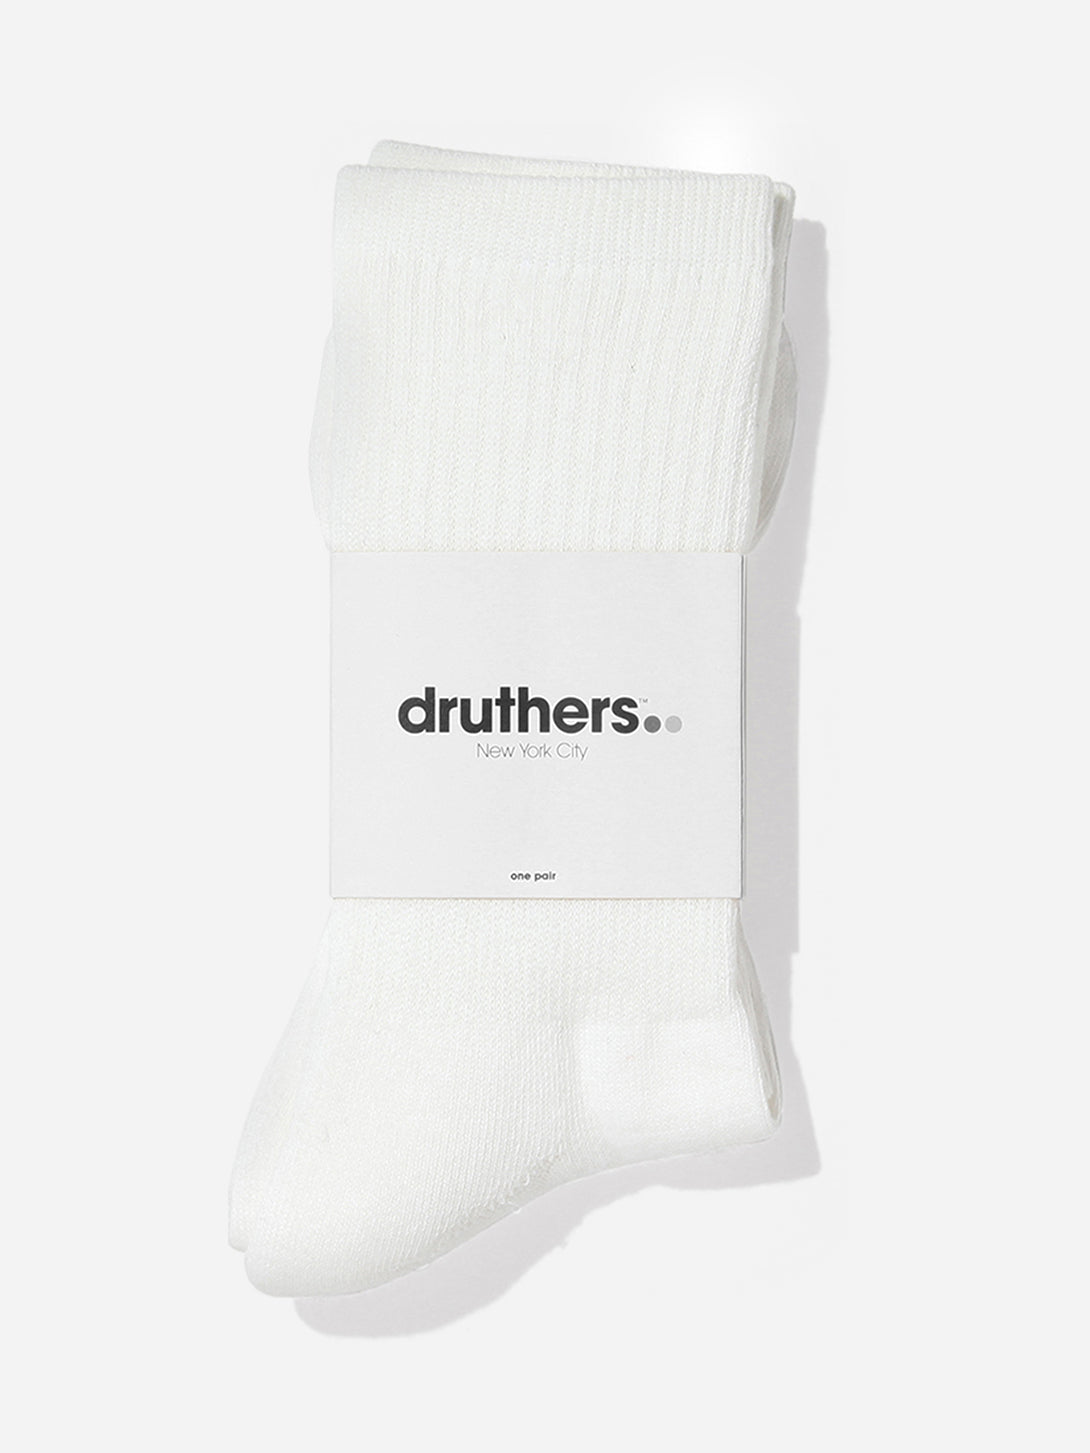 WHITE druthers socks for ons clothing